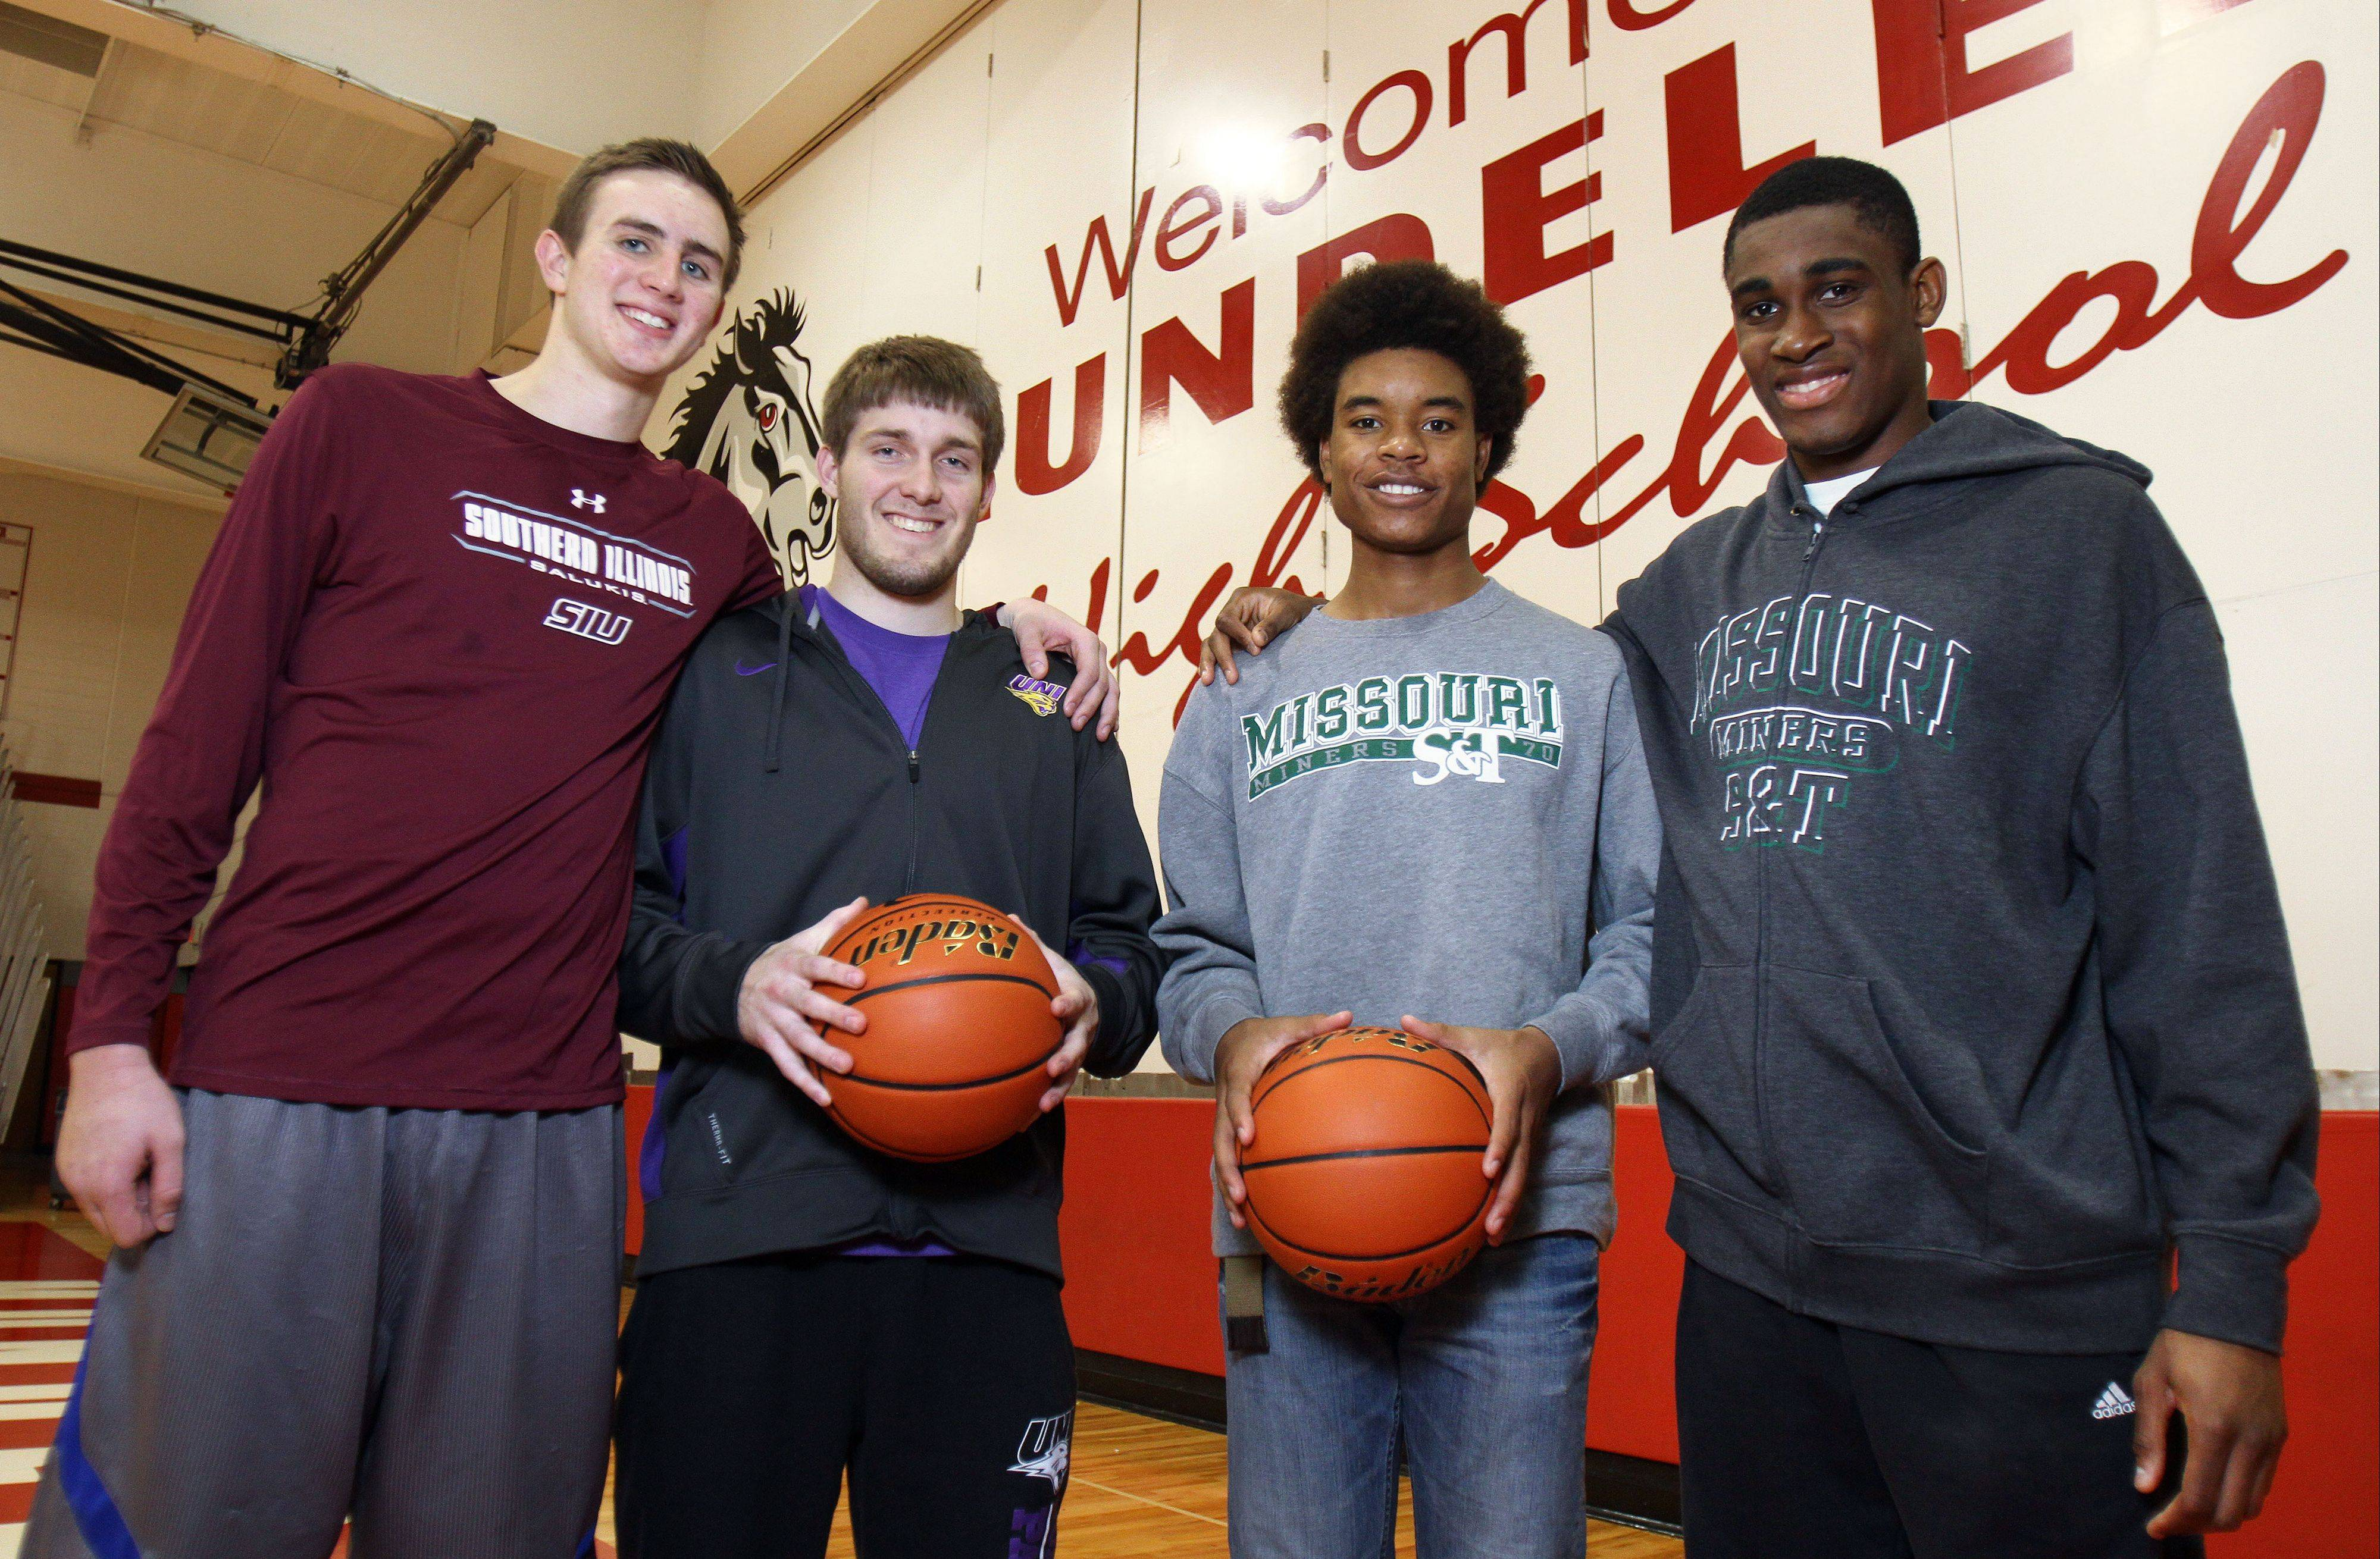 The Mundelein boys basketball team has four players headed for full college scholarships. From left are Sean O'Brien, Robert Knar, Cliff Dunigan and Chino Ebube.